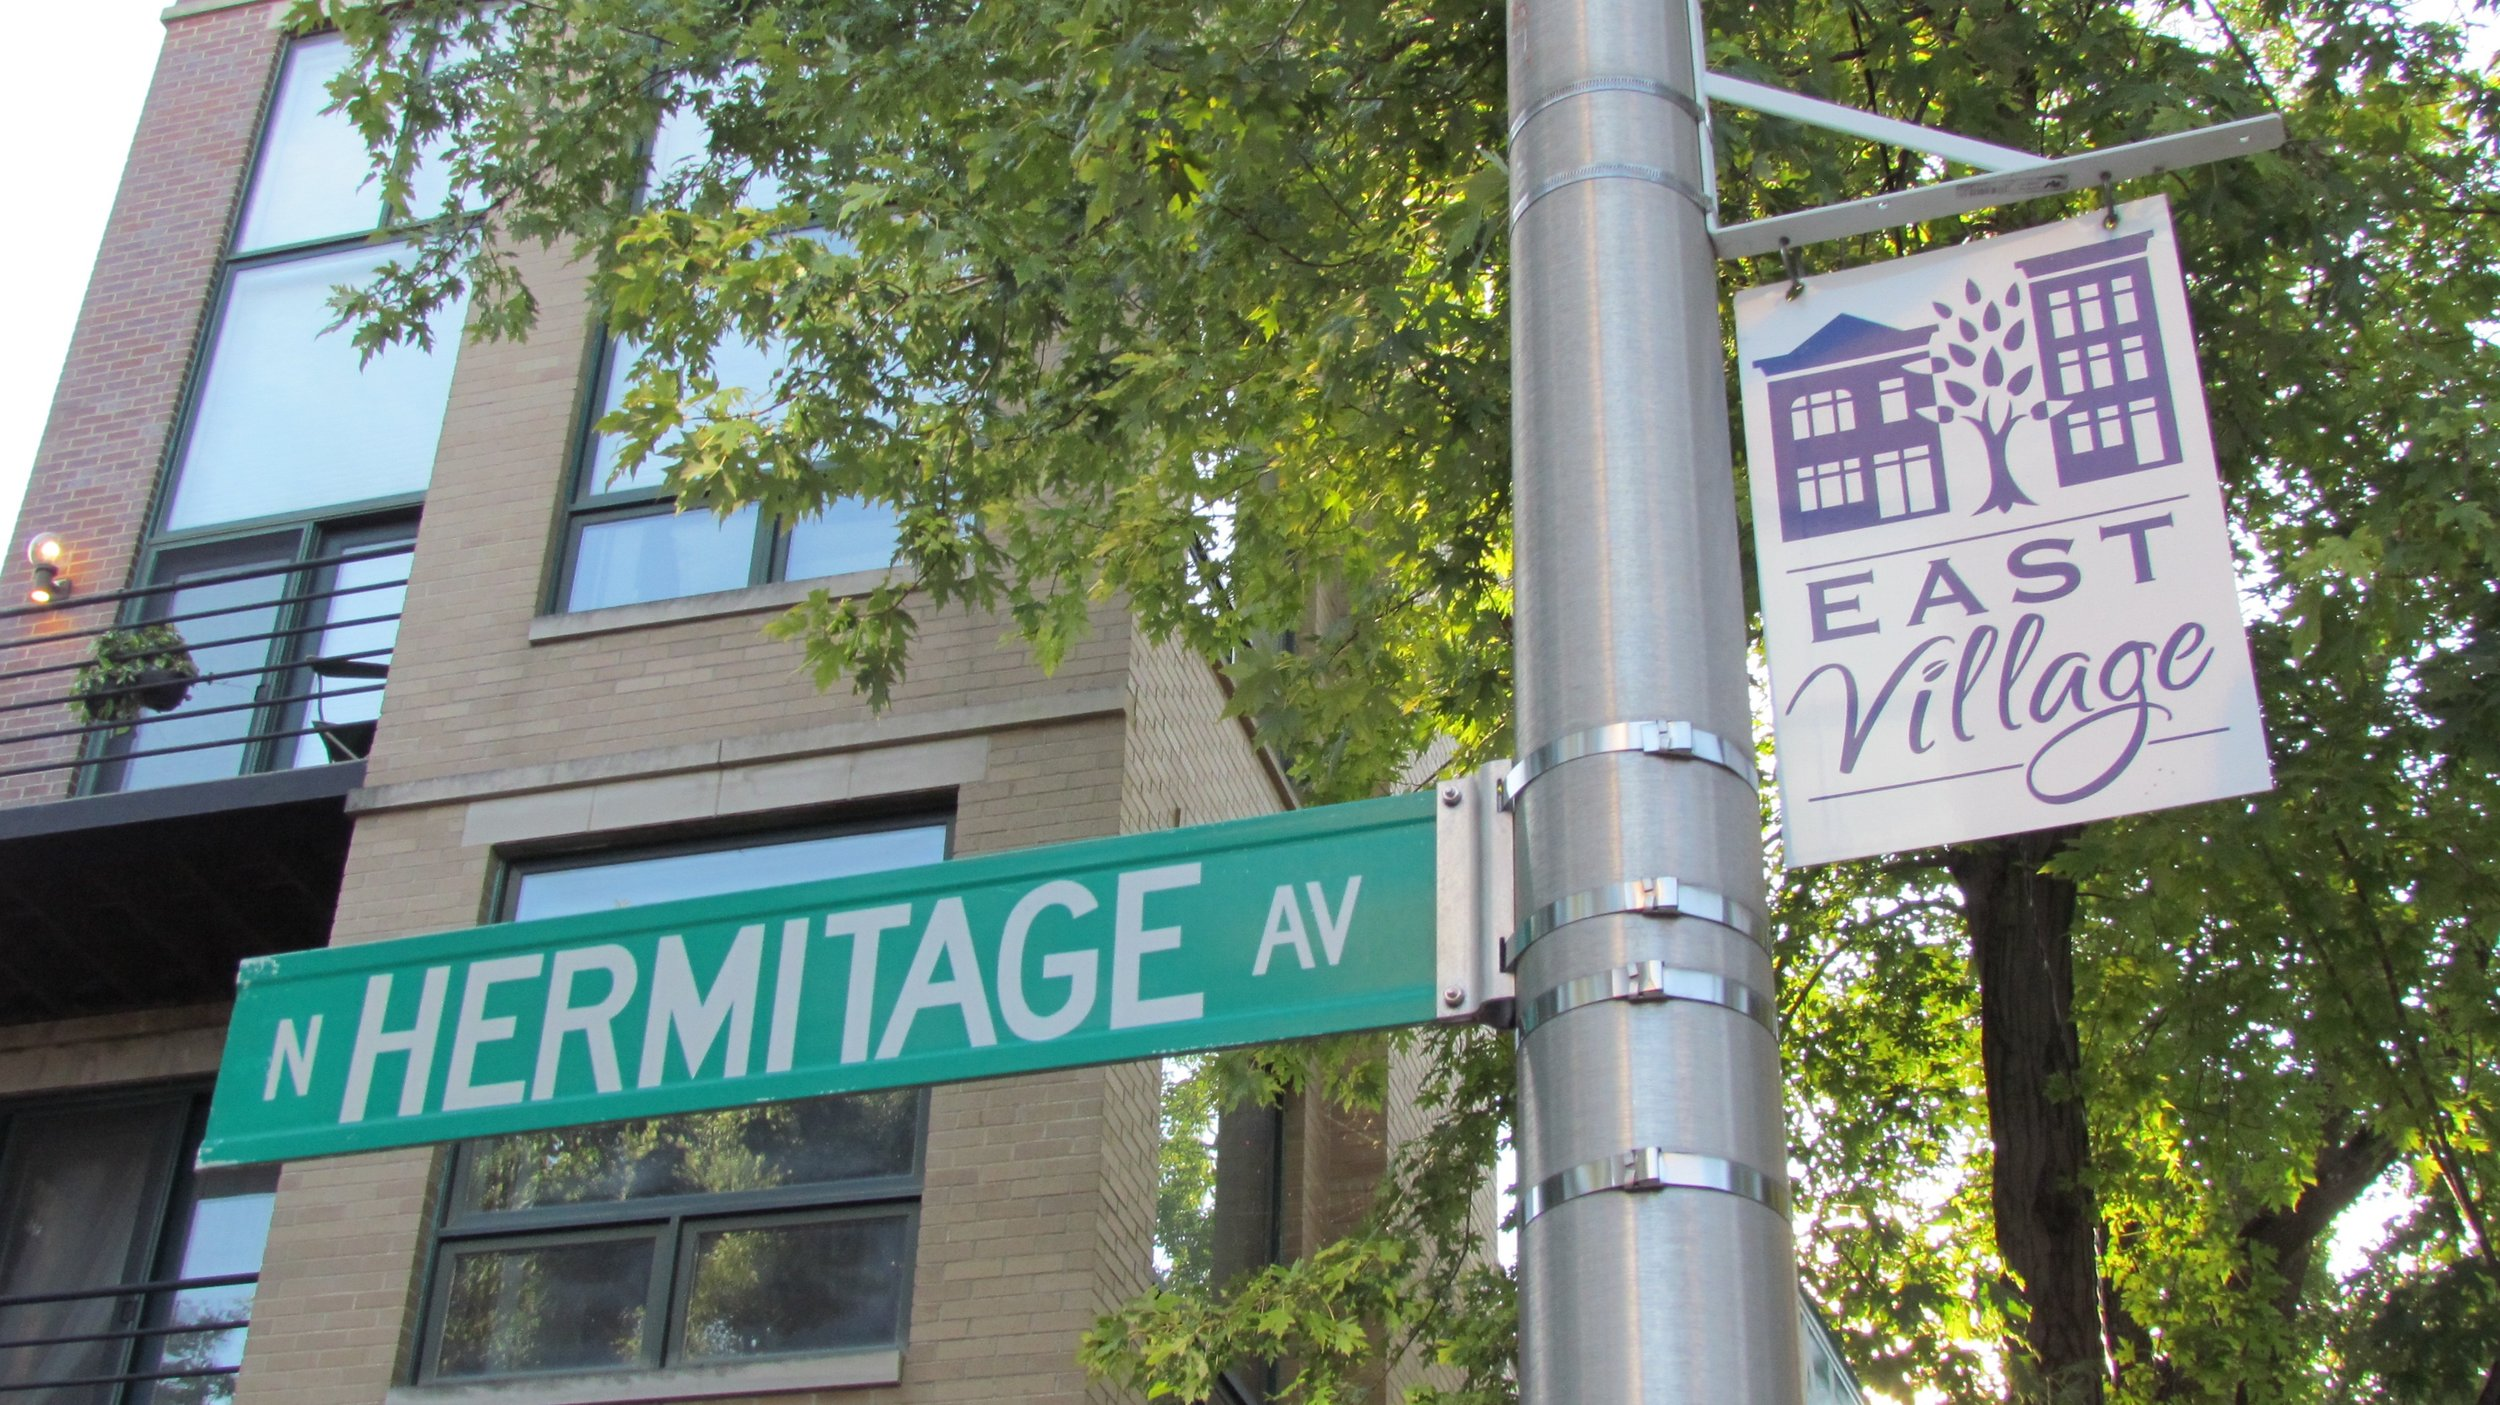 East Village Real Estate